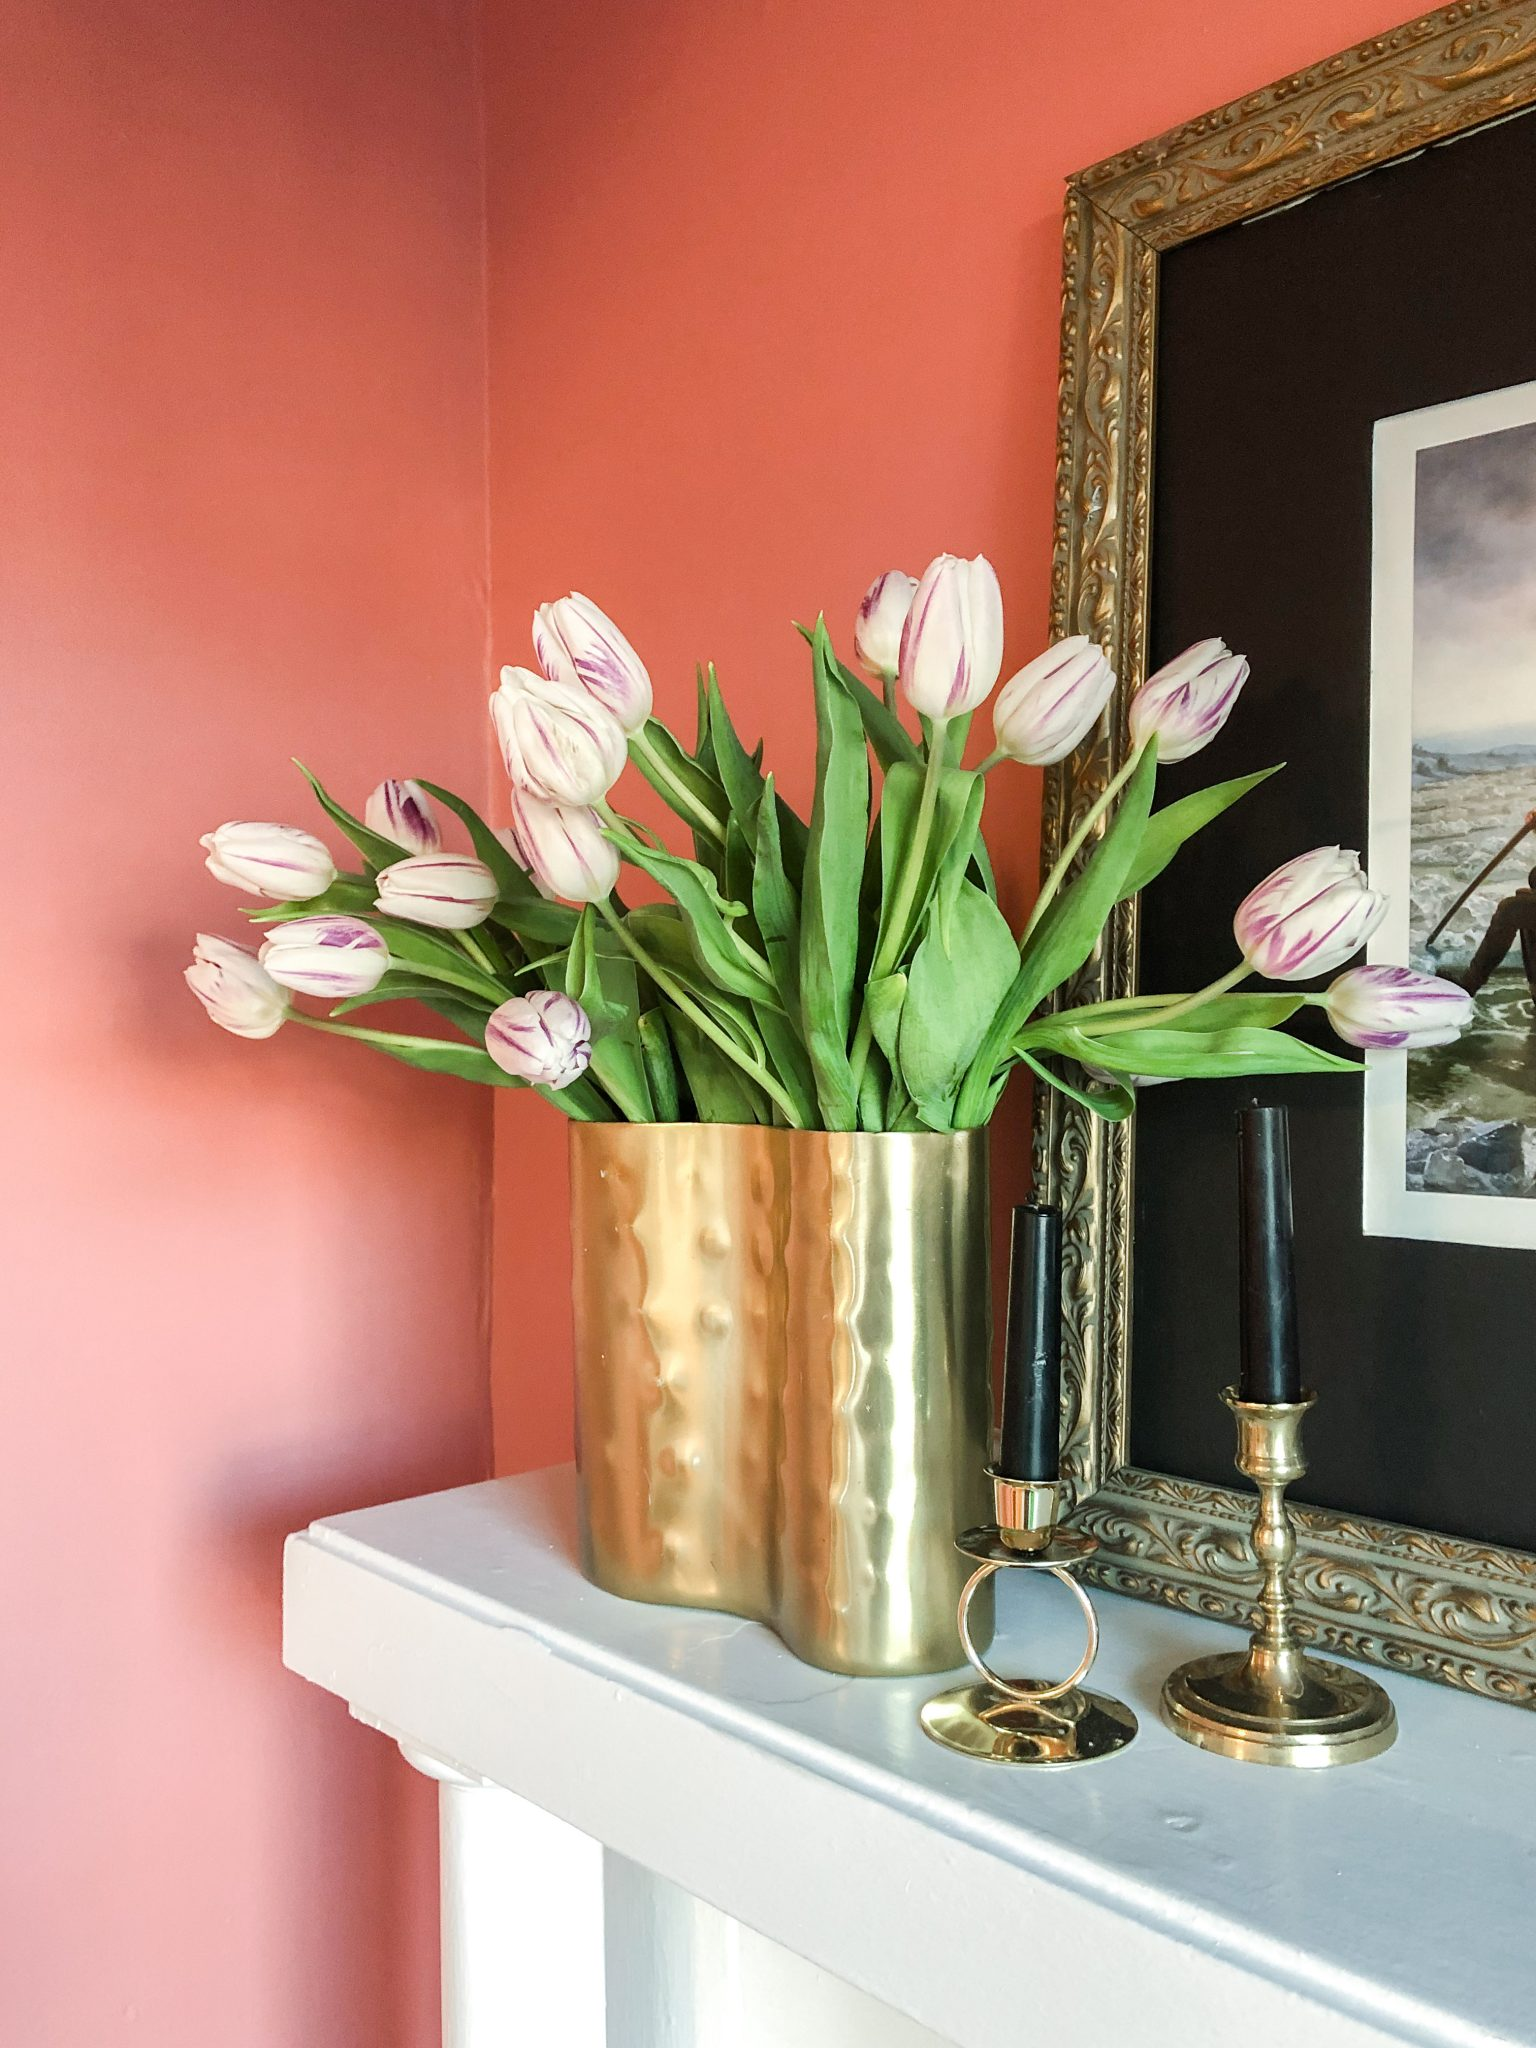 With White and Wood Olivia Quinlan Home Color Trends for Spring